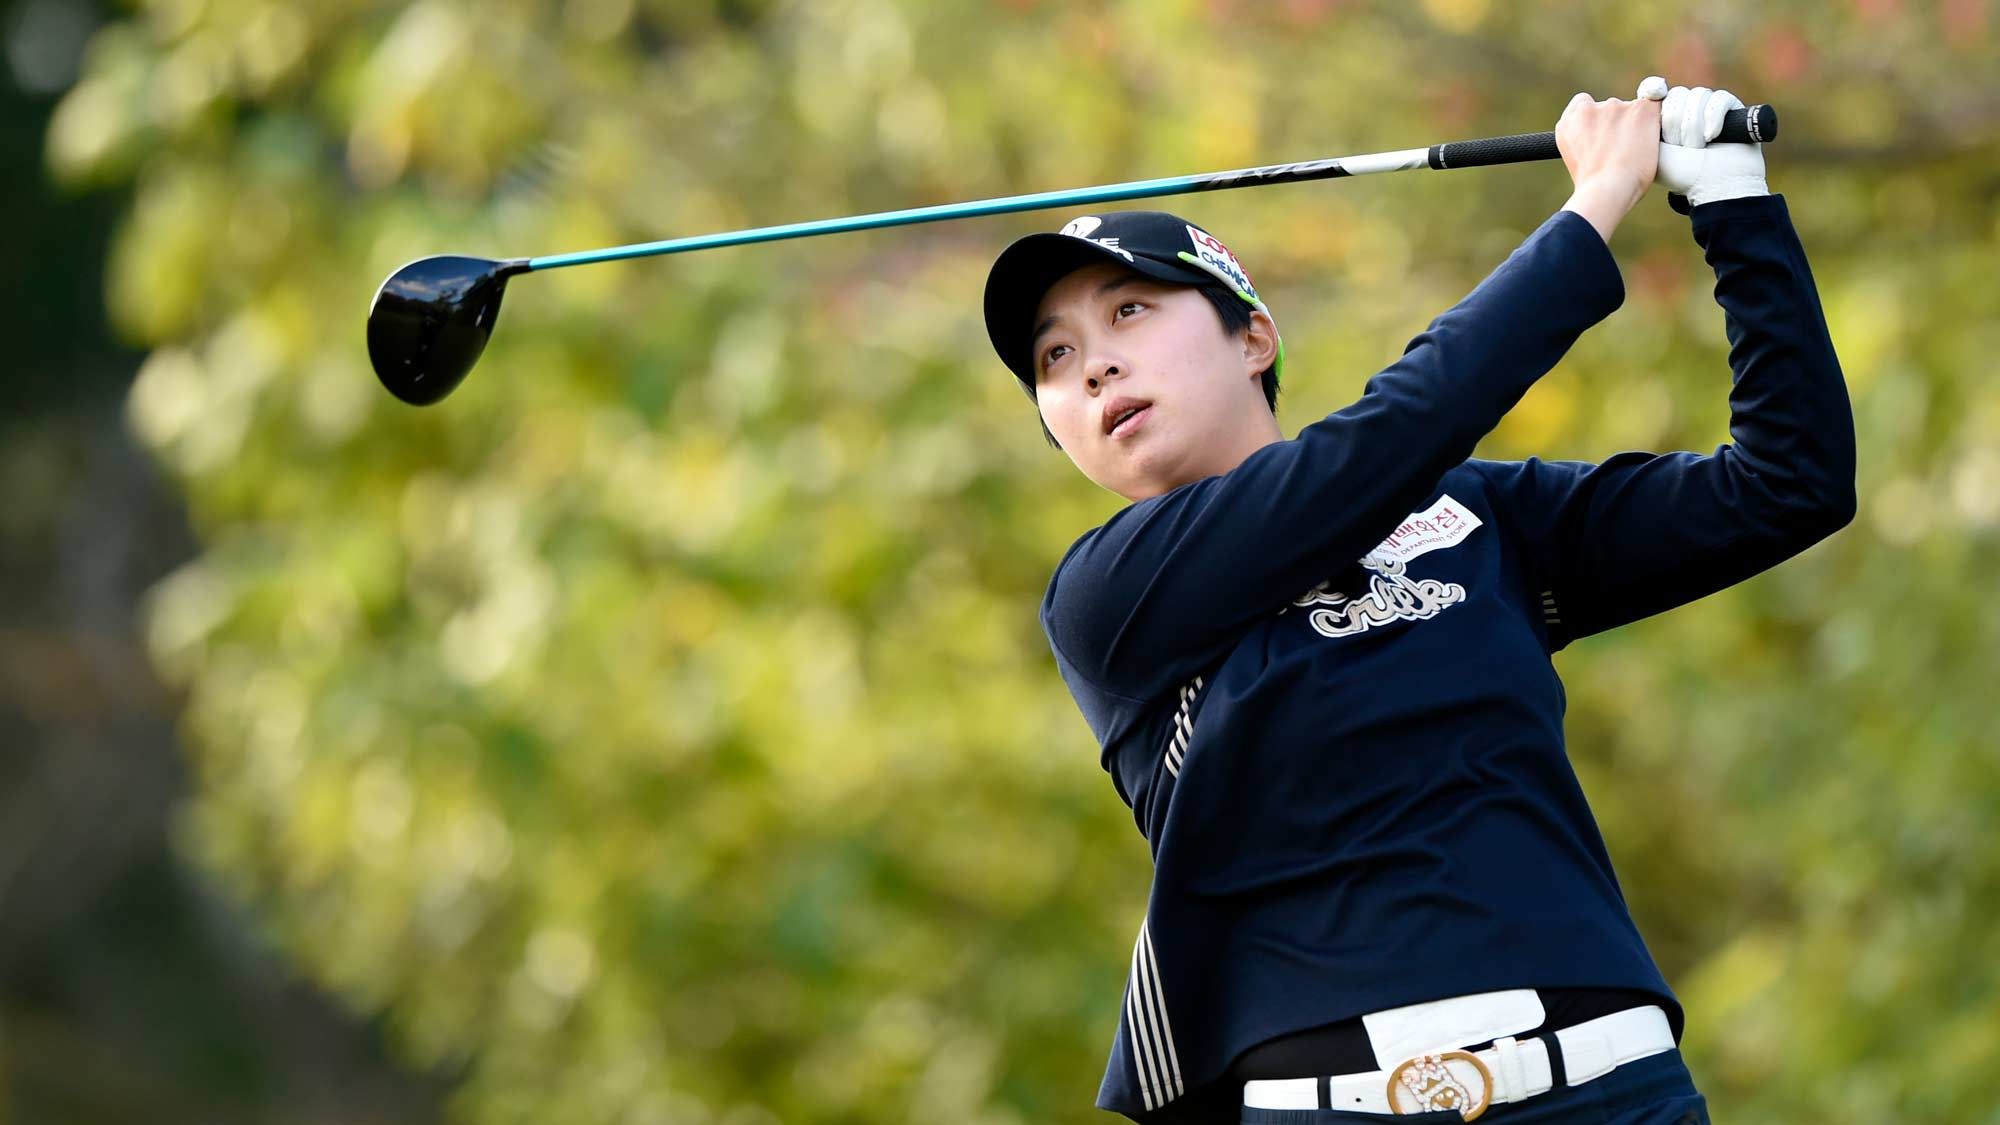 Hyo Joo Kim hits fairway wood at the first round of the 2019 TOTO Japan Classic